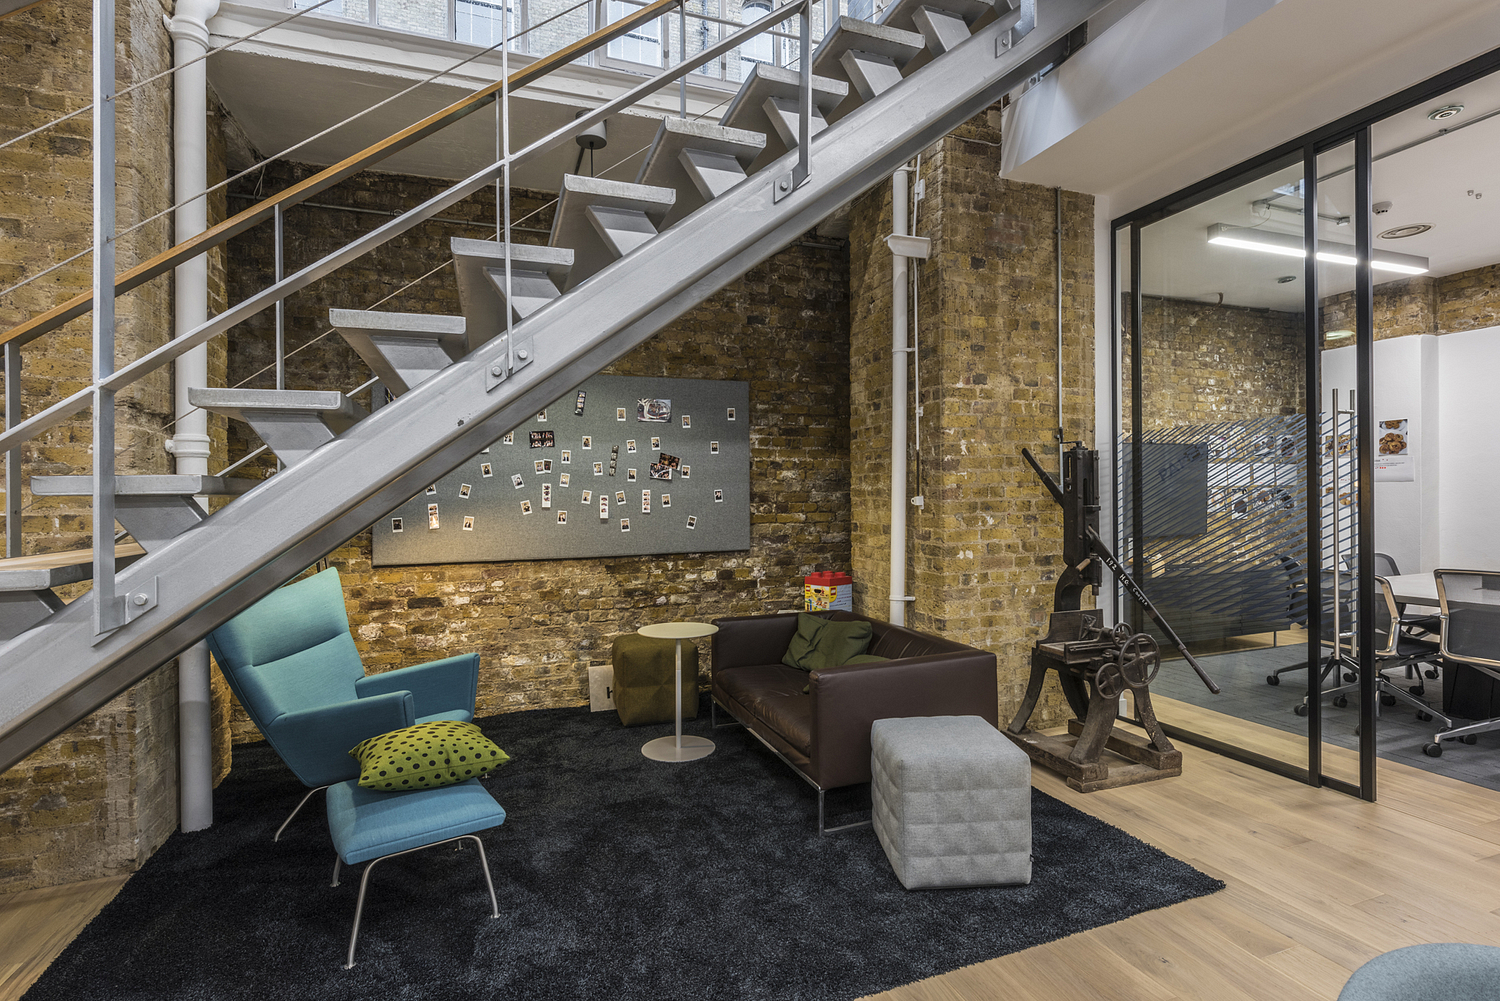 Breakout area, London Architect's office